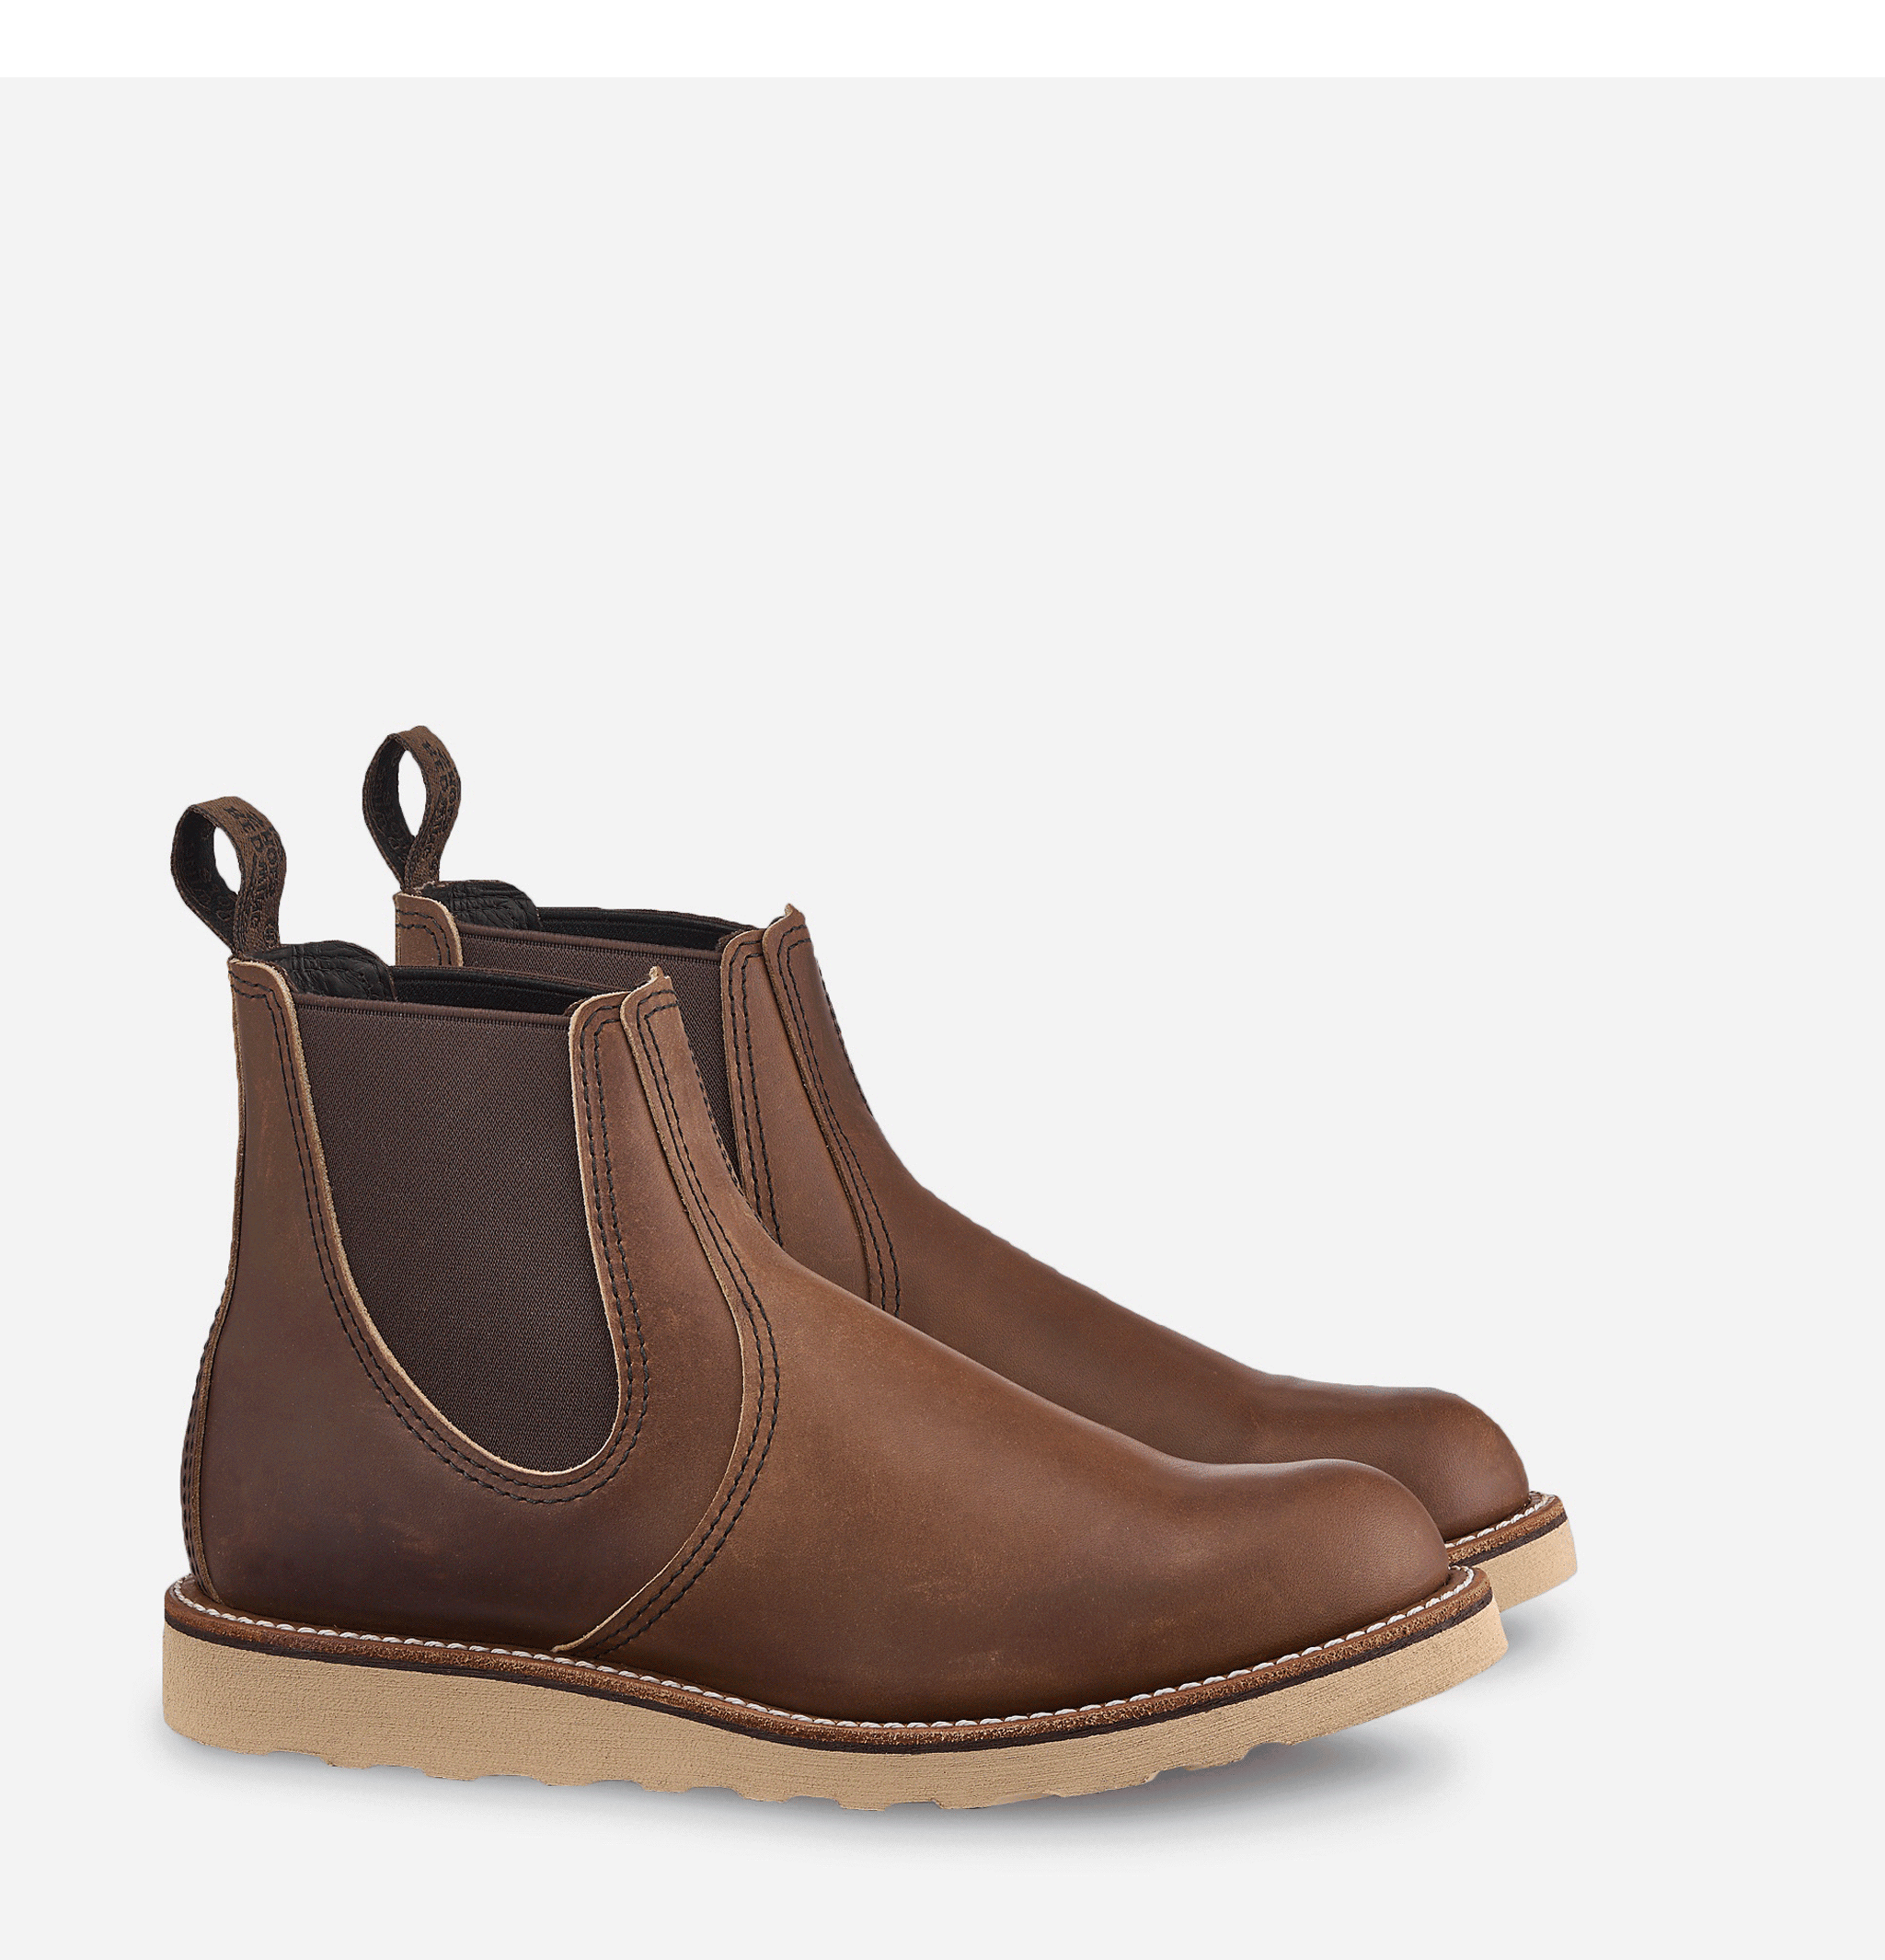 3190 - Rover Chelsea Boots...